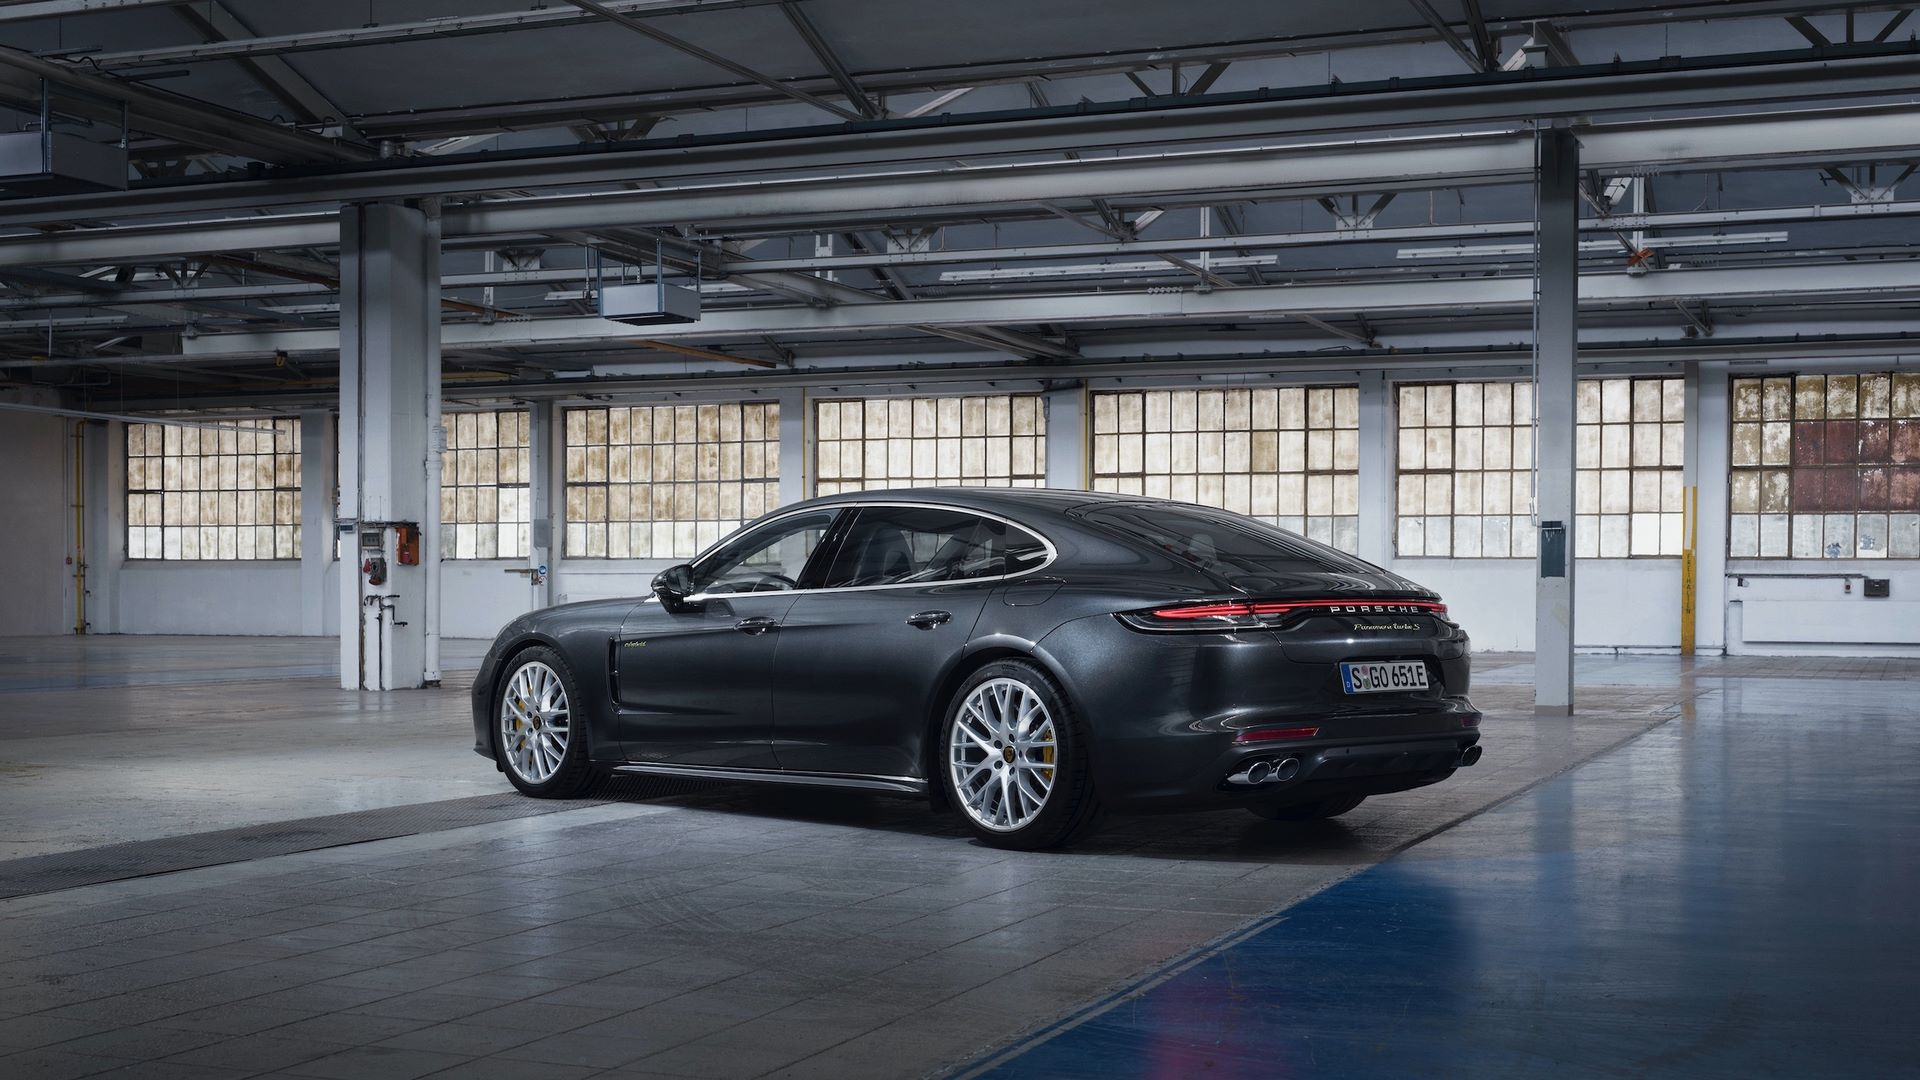 Porsche-Panamera-Turbo-S-E-Hybrid-4-E-Hybrid-and-4S-2021-11